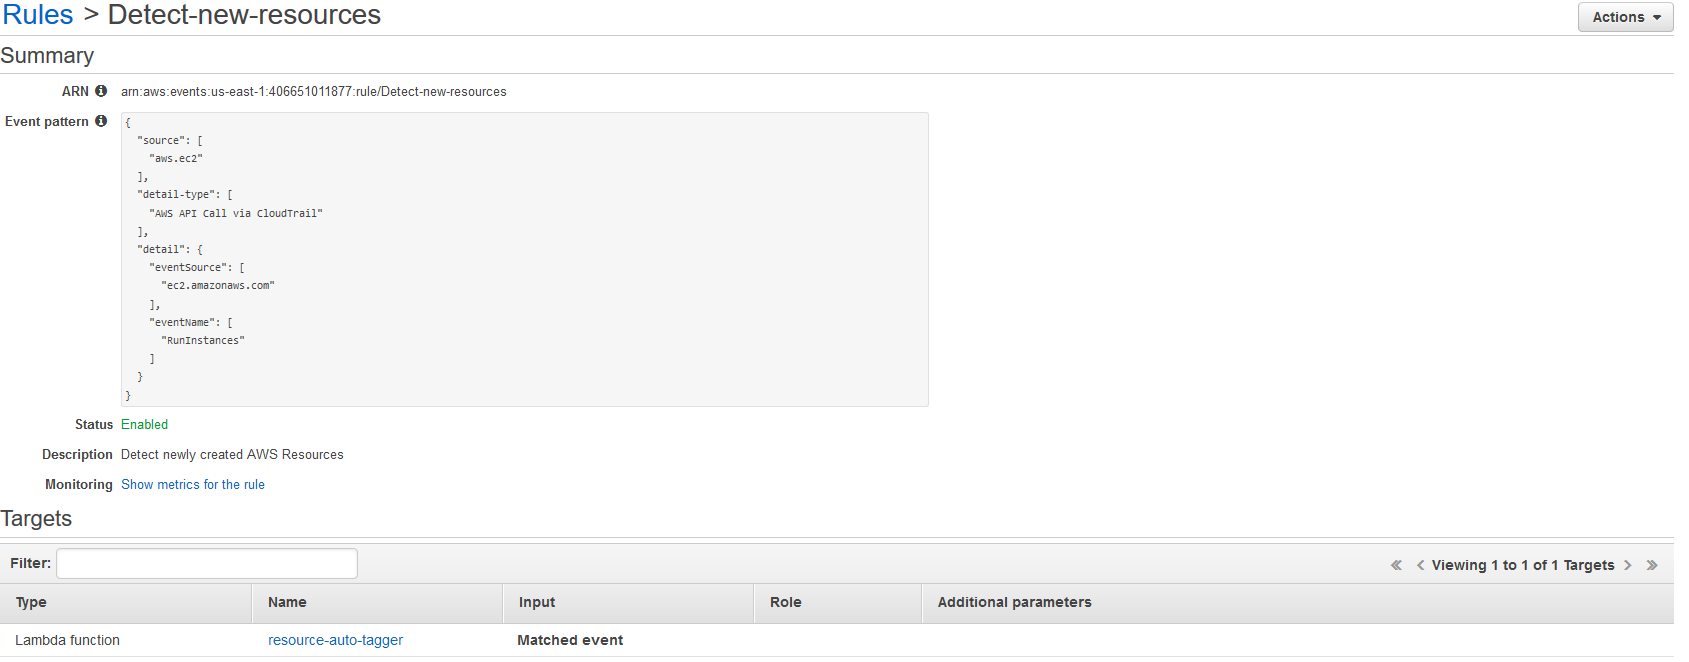 Example CloudWatch Events rule shown in the AWS console. Includes rule's event pattern & Lambda function target.